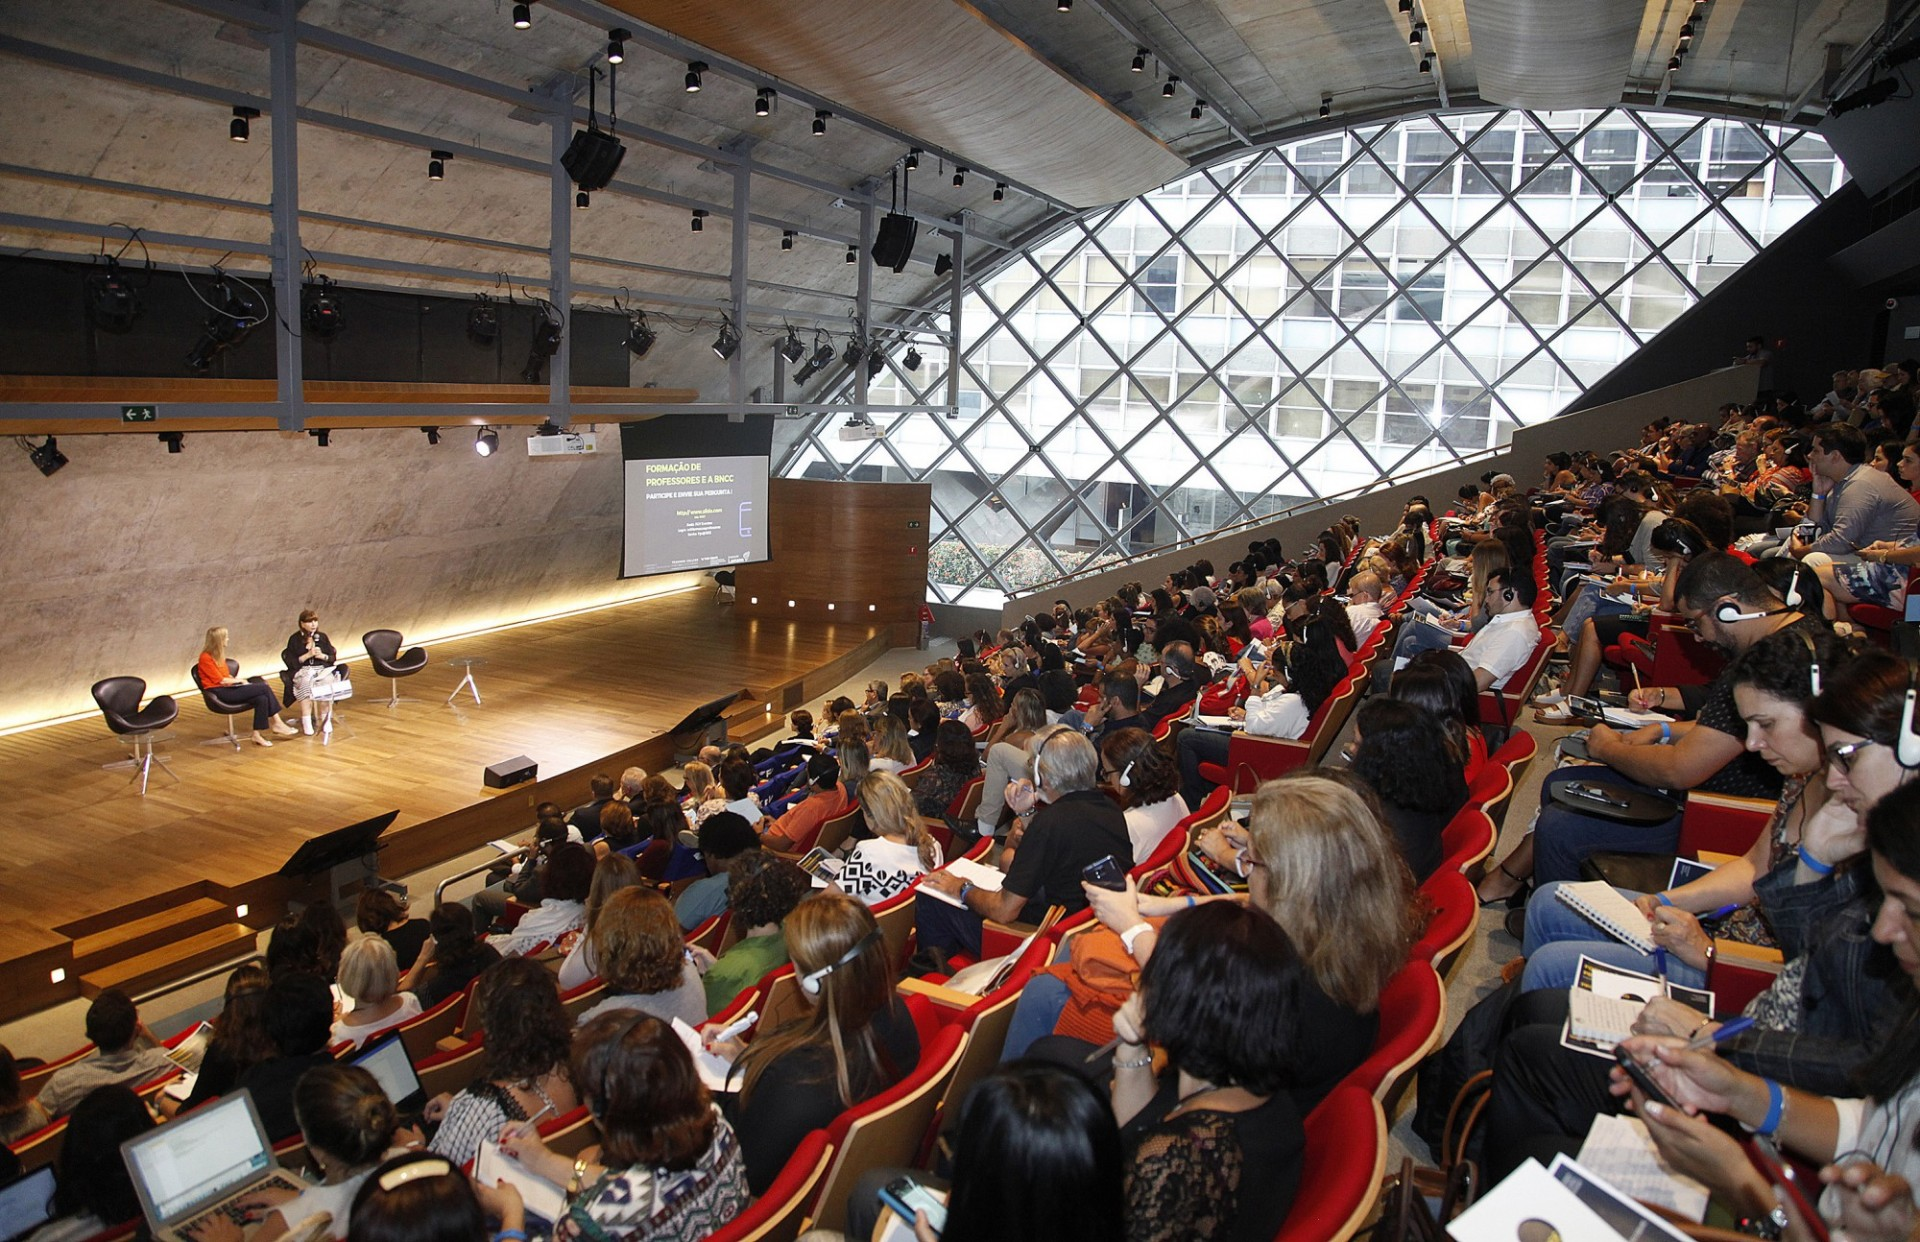 Picture from Rio Center's 5th anniversary on March 2018. The photo shows a full-house audience